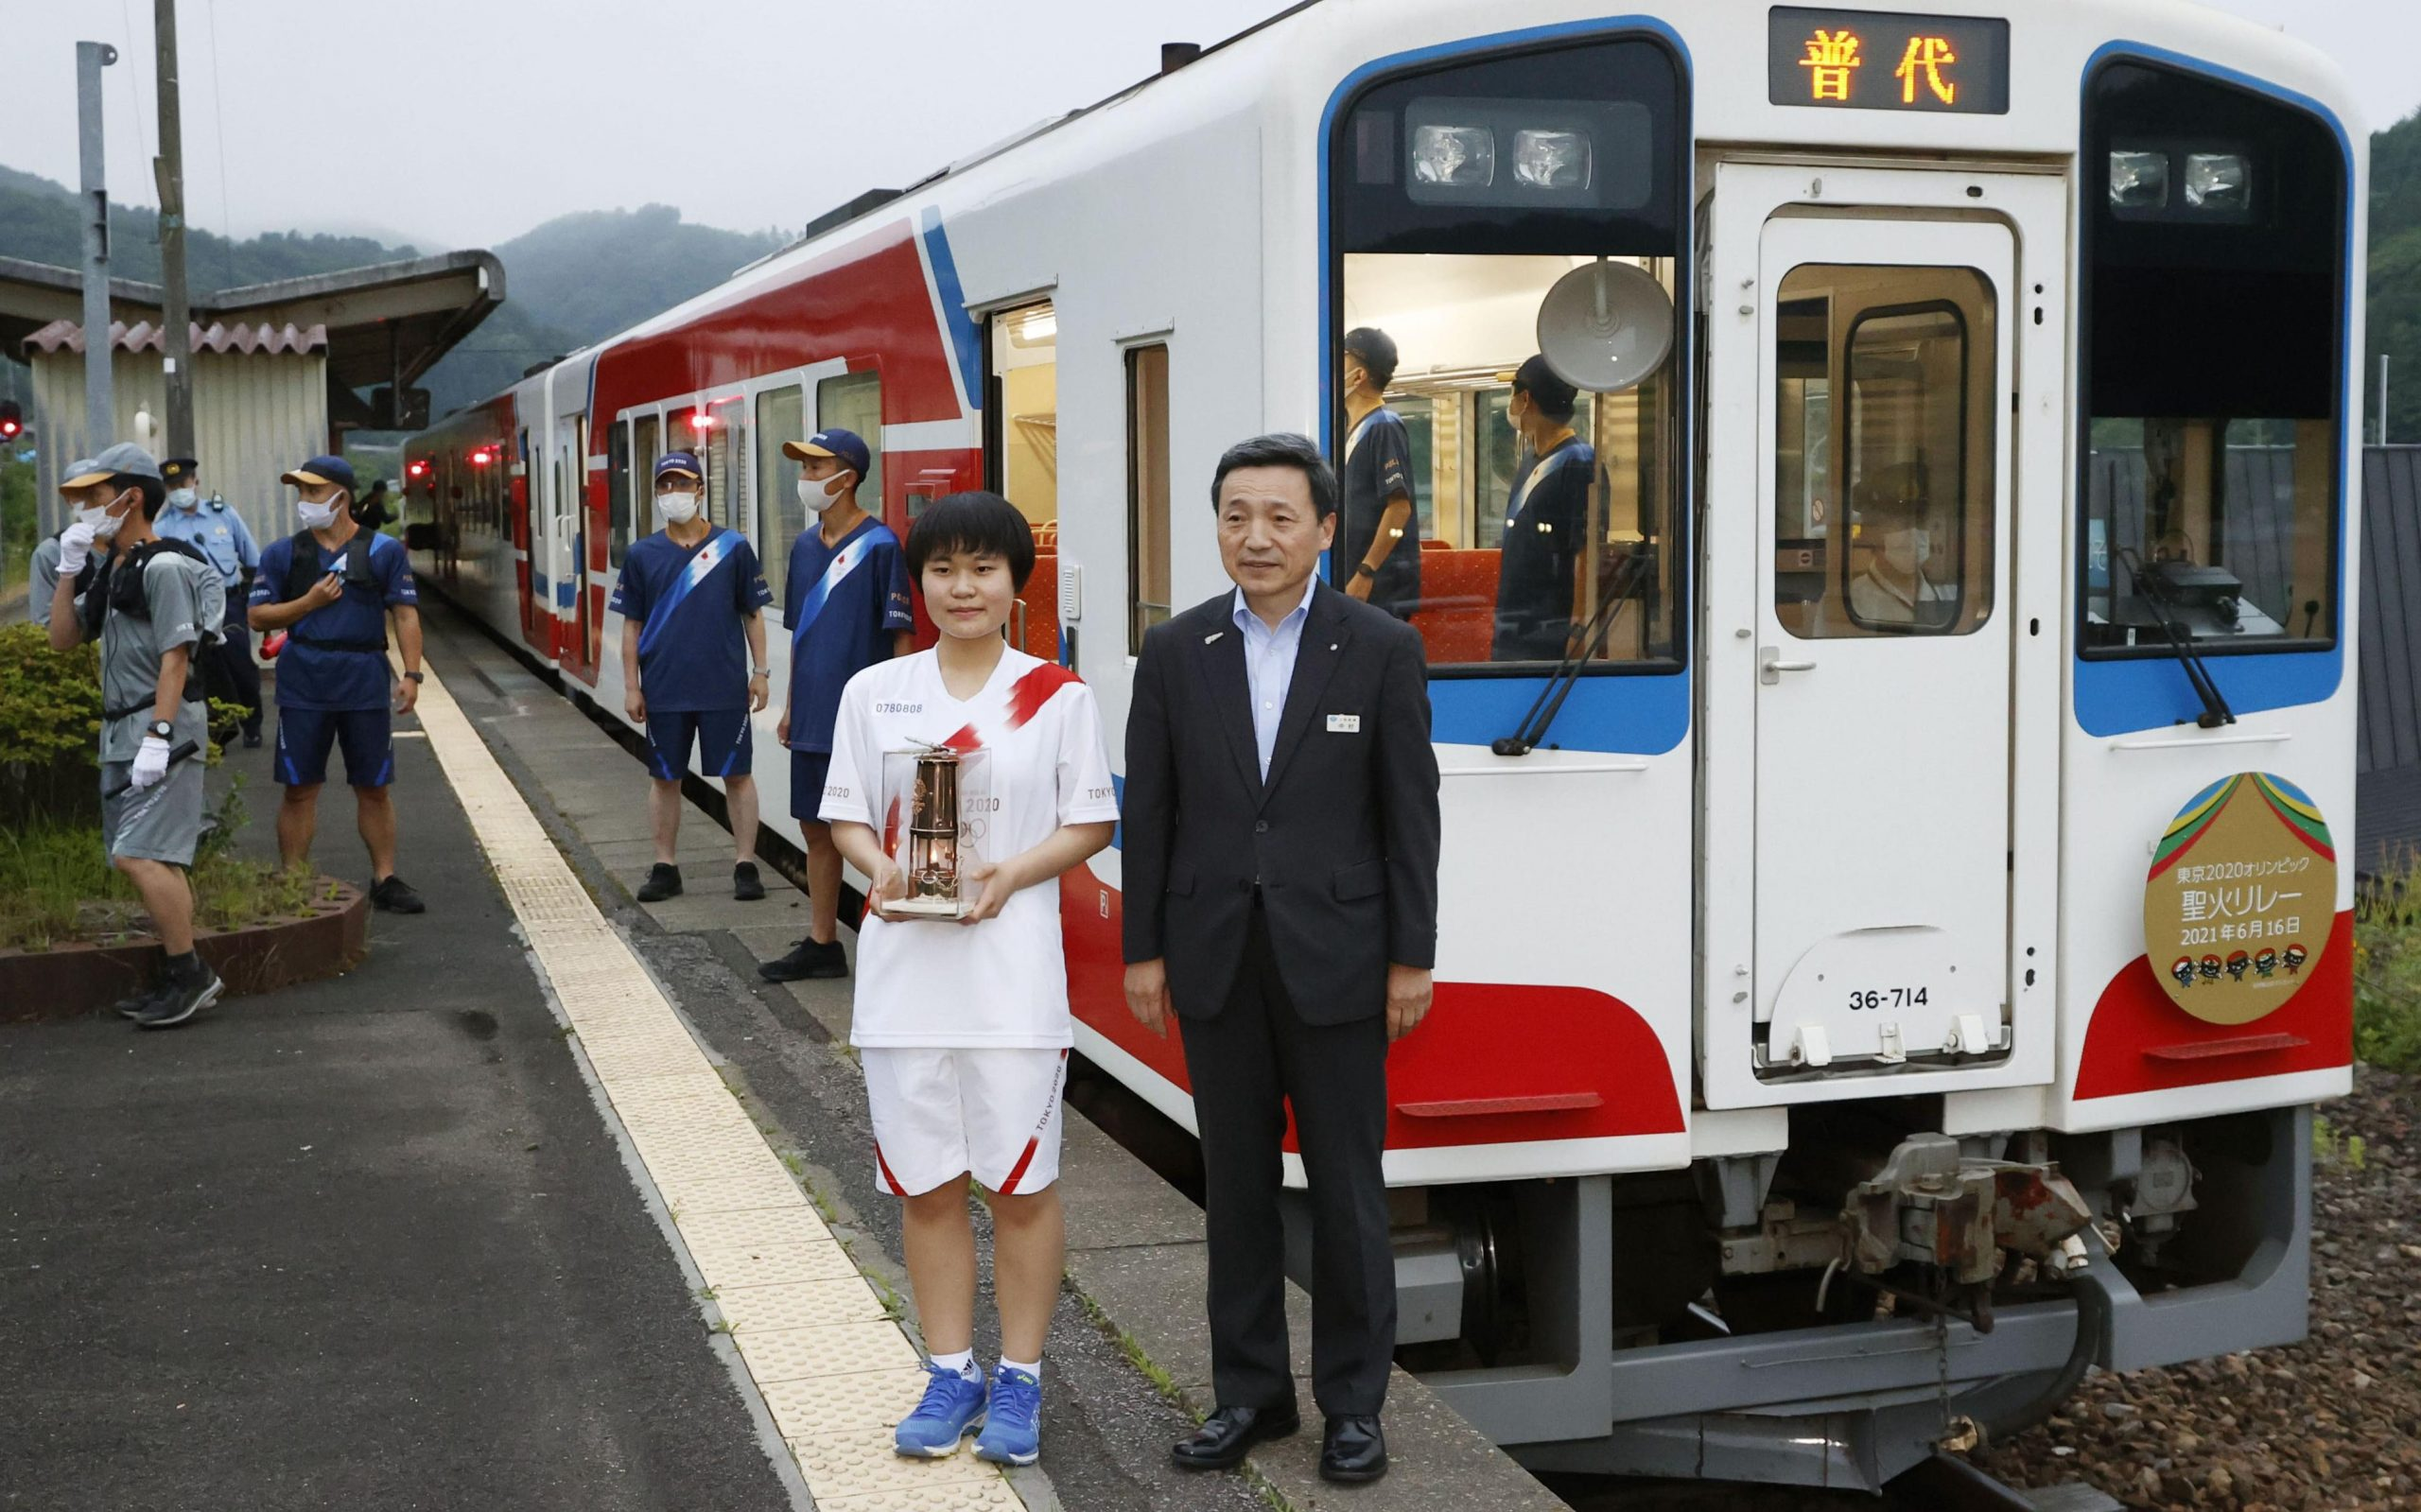 The Sanriku Railway was particularly heavily damaged in 2011 and only restored full operation in 2019. Now it is seen as a symbol of hope.